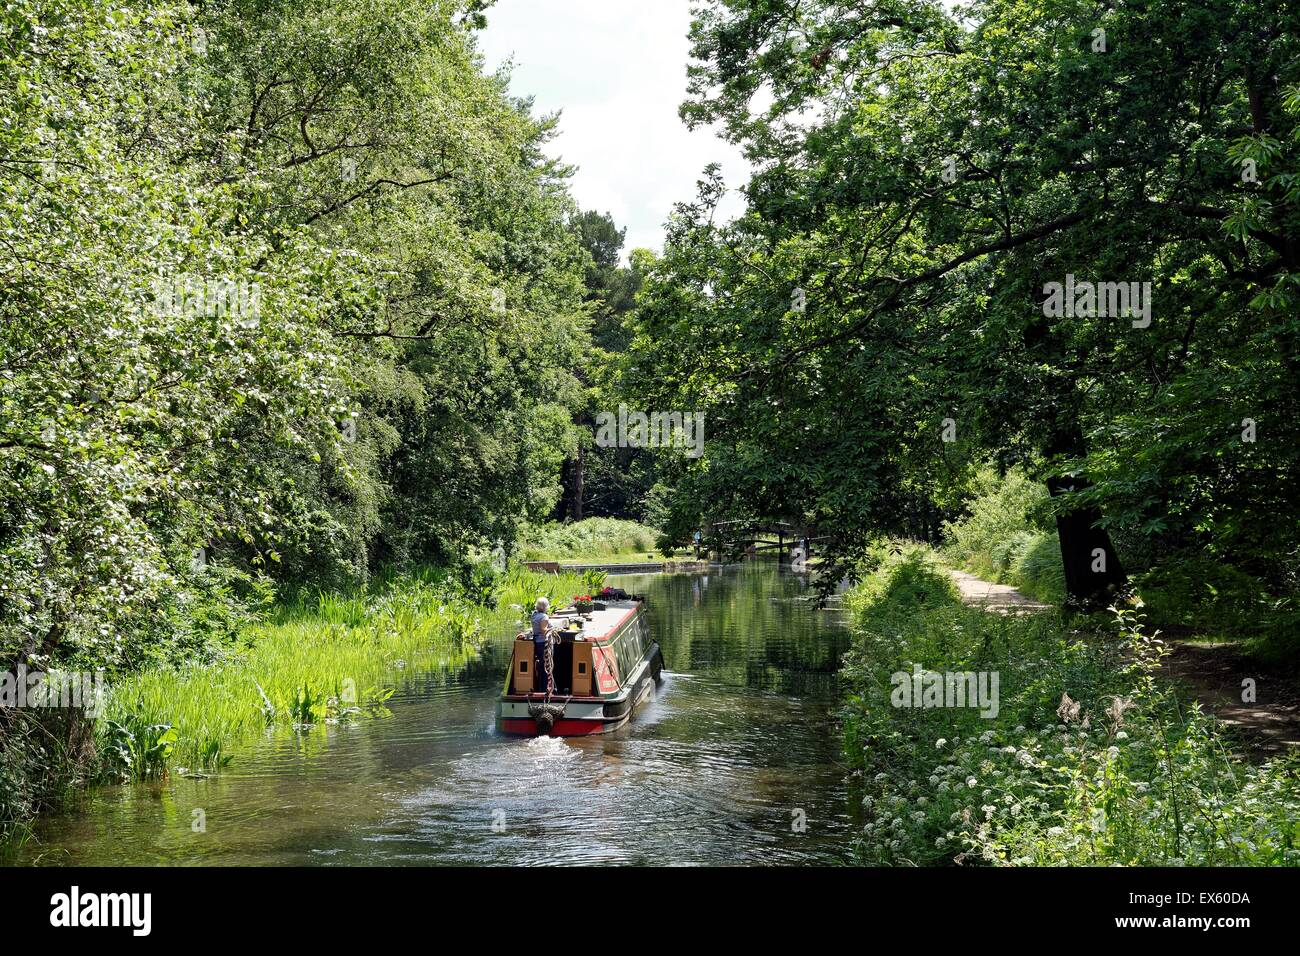 Narrow boat on the Basingstoke canal at Brookwood Surrey UK - Stock Image